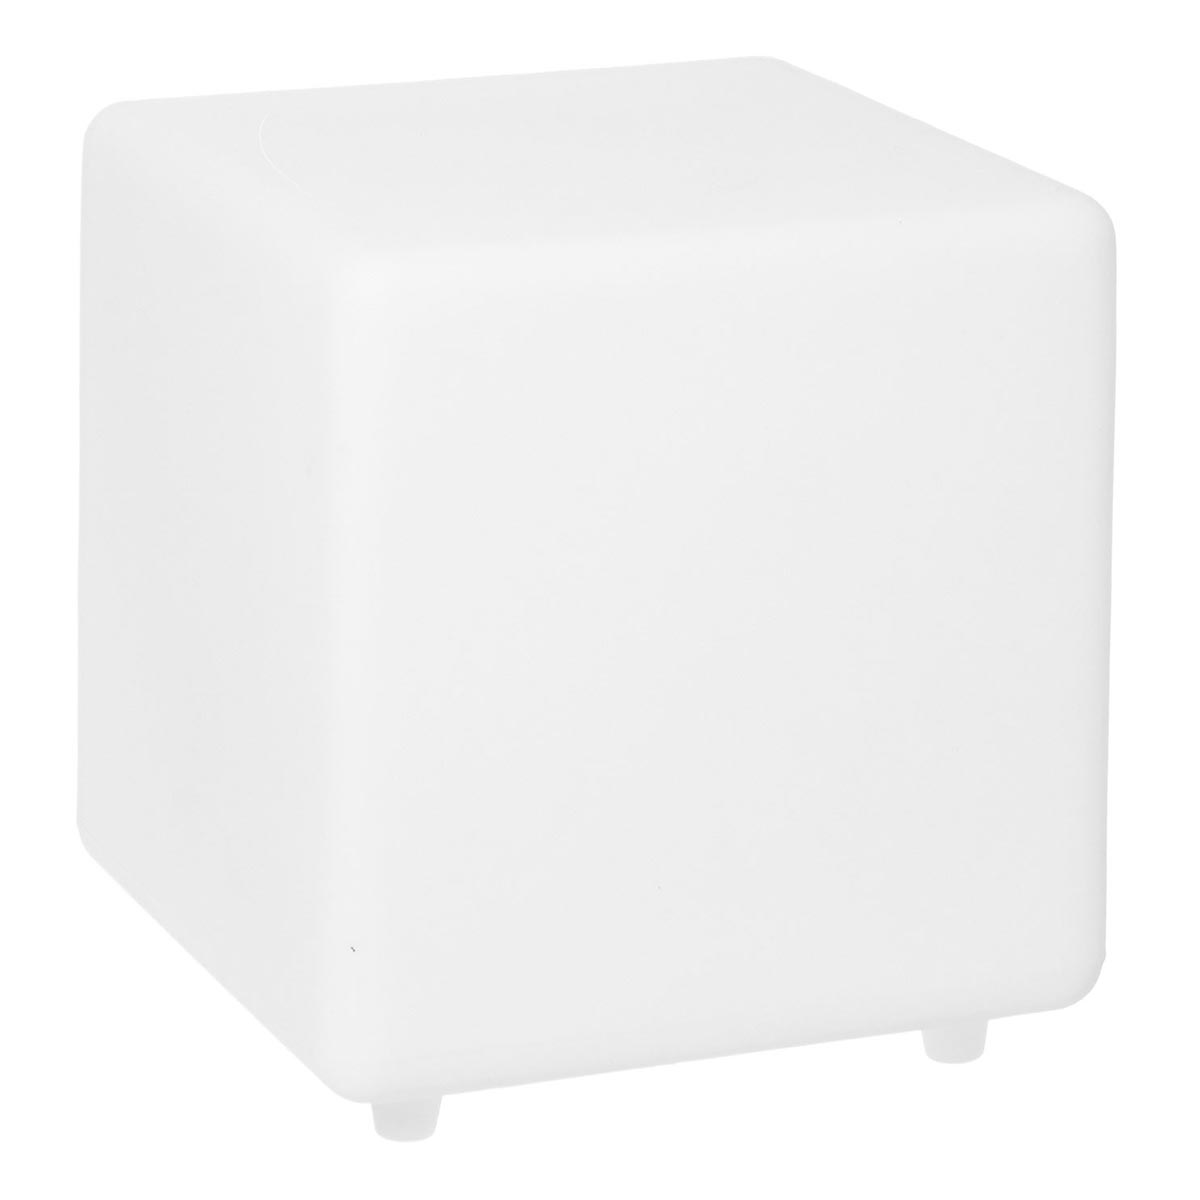 Cube solaire lumineux tabouret table basse LED blanc/multicolore CASY H30cm - REDDECO.com